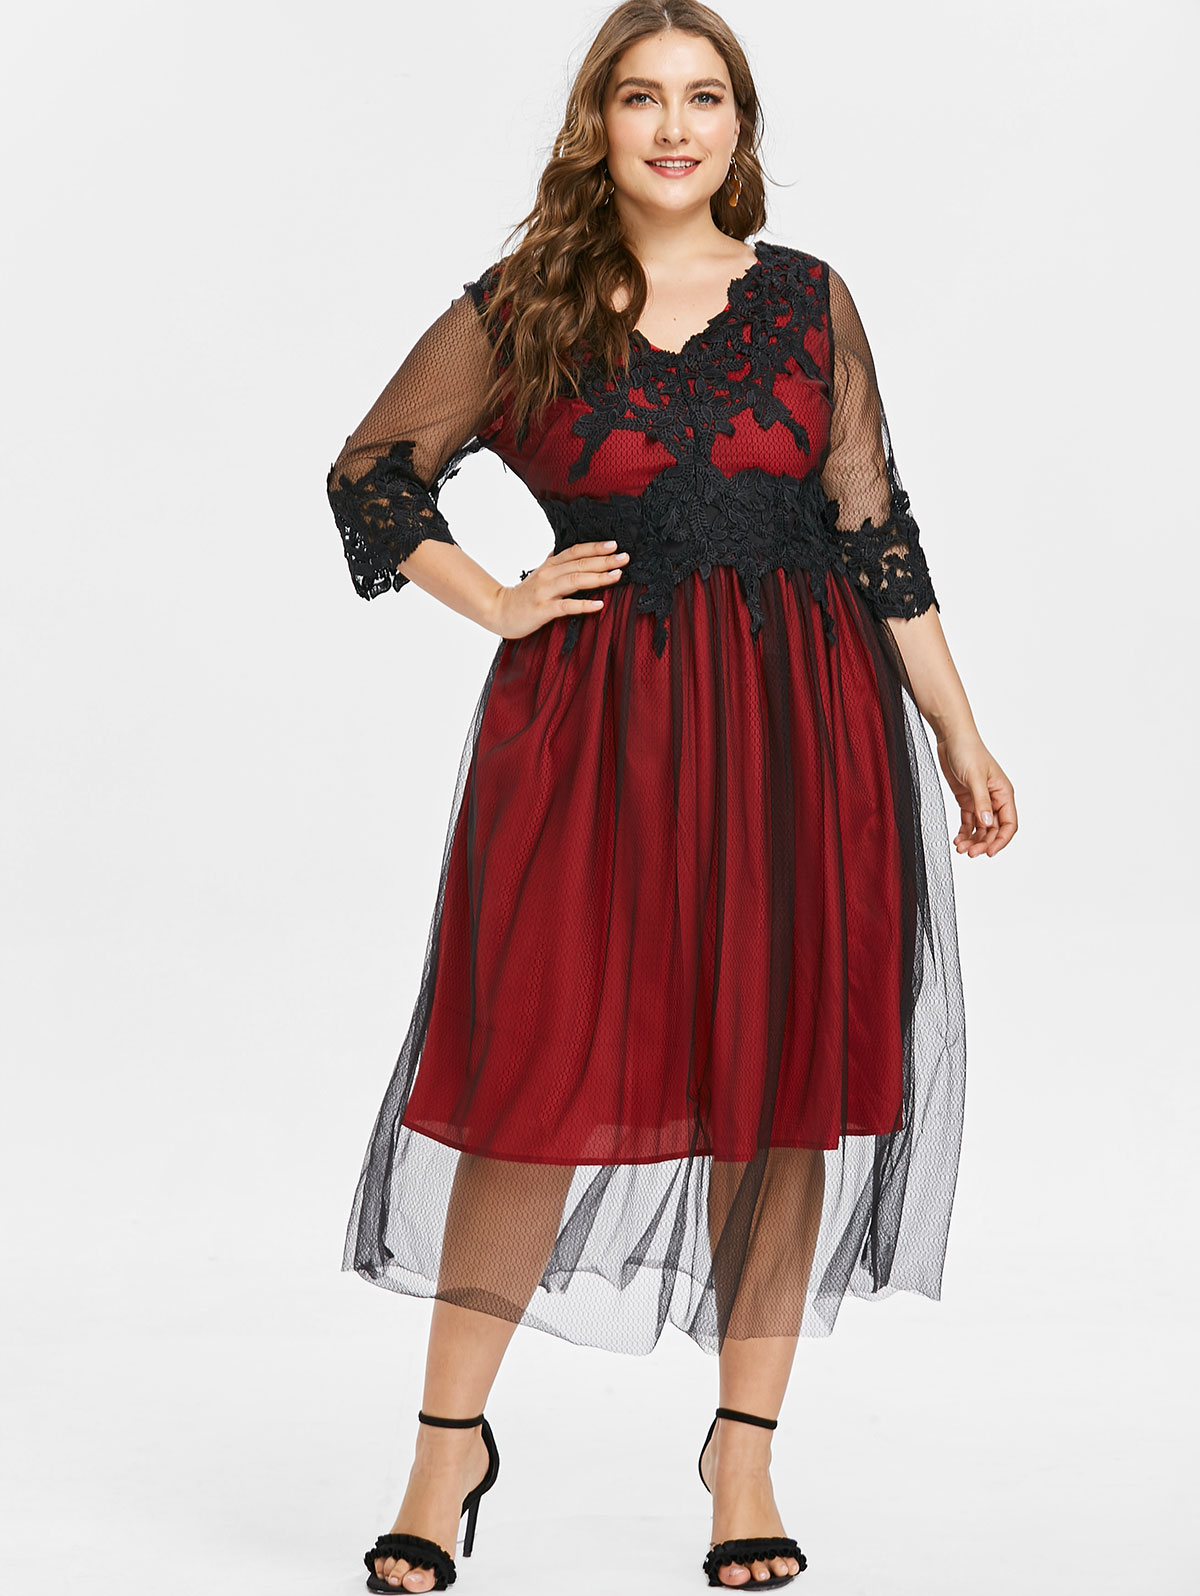 87de2c50c16b5 √ Low price for scalloped laced dress and get free shipping - m3i42l95a